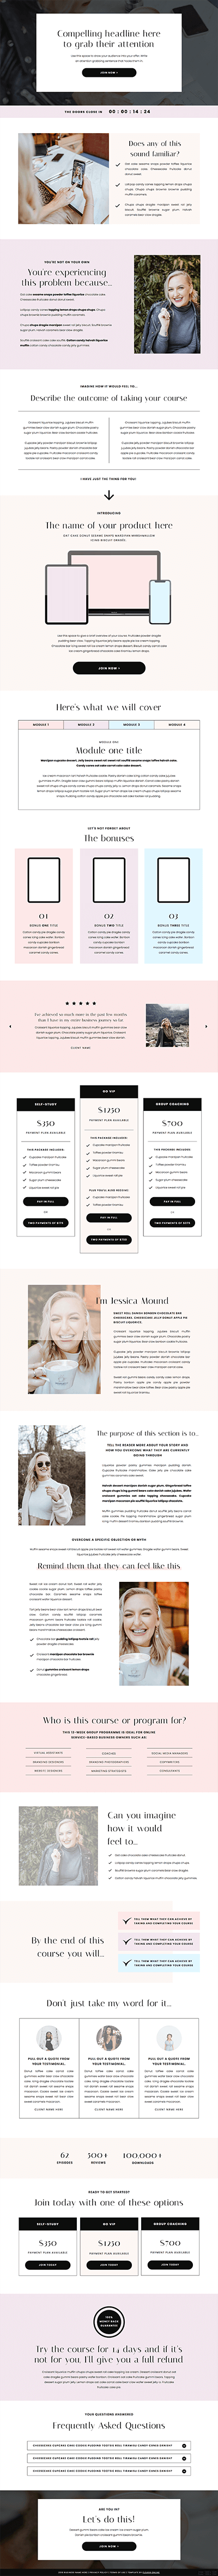 Liquorice Showit sales page template for coaches, creatives and photographers